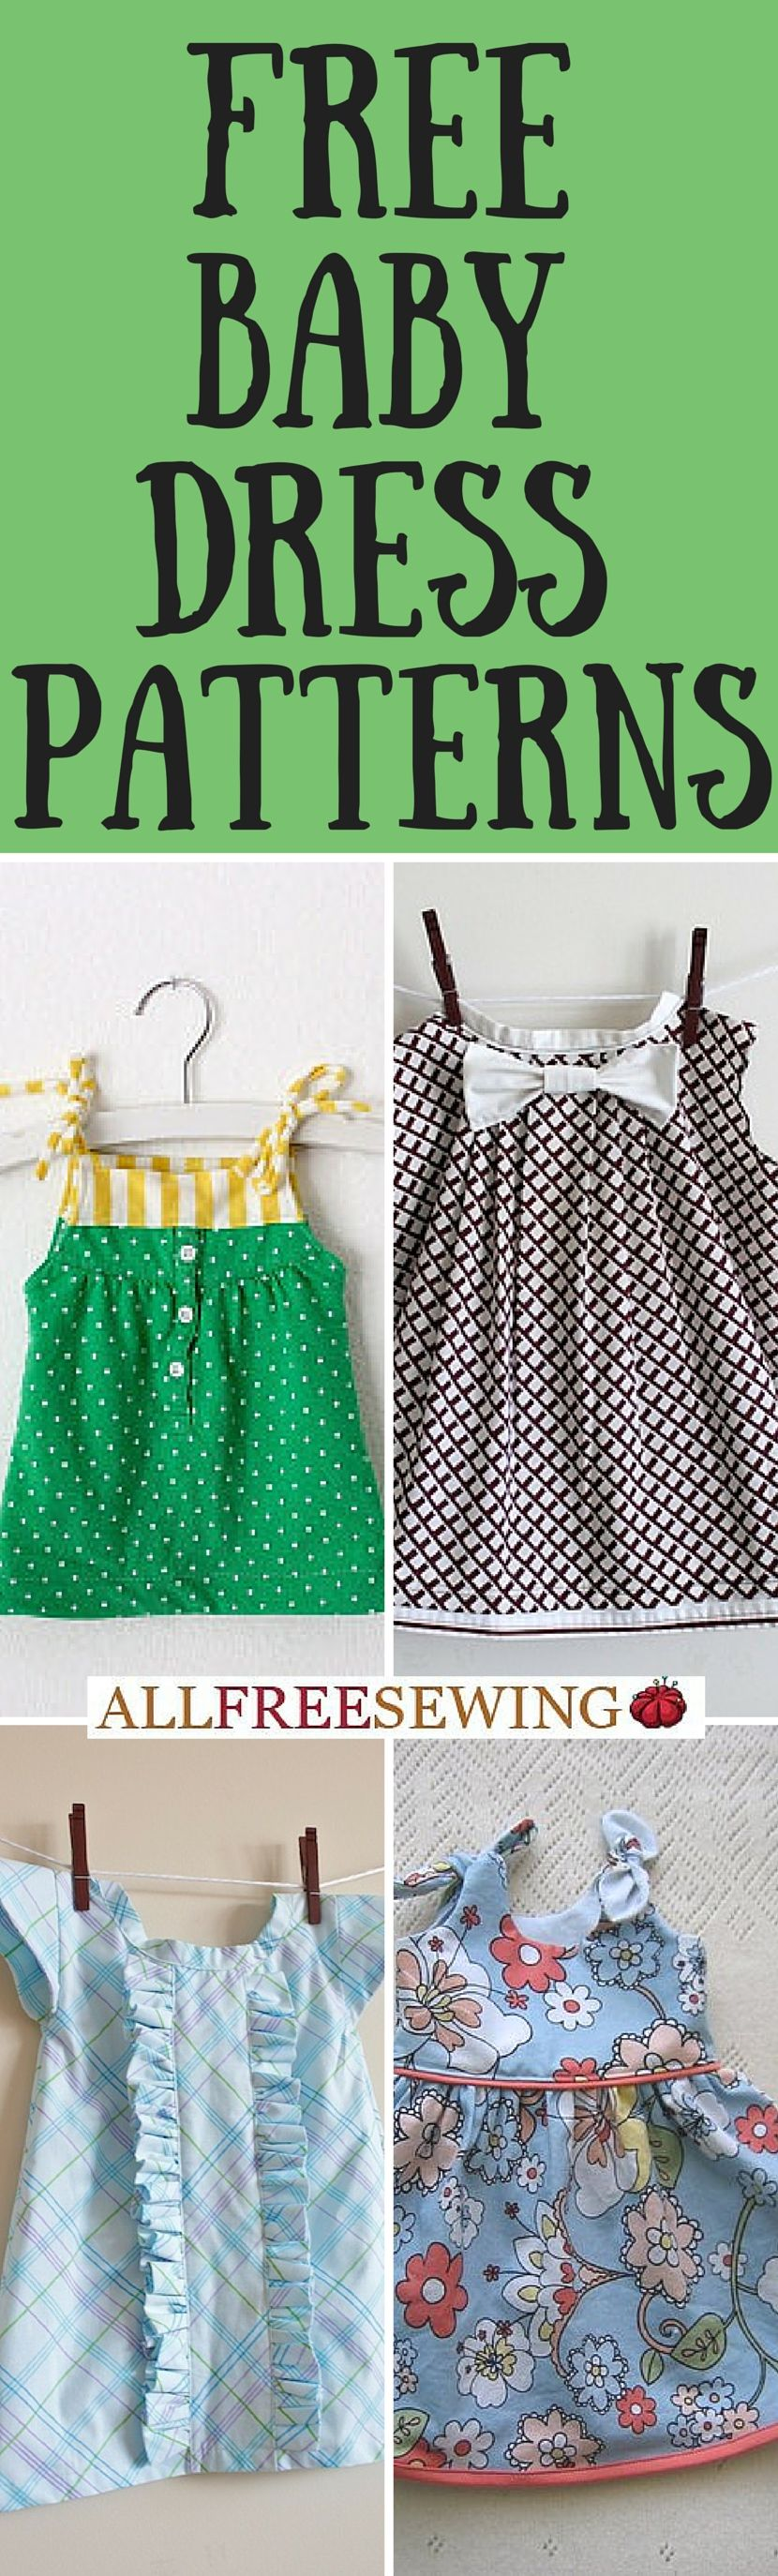 Baby Dress Sewing For Pinterest Patterns Anak Mom N Bab Purple Monkey Size 18m Find A Pattern Perfect Your Little One